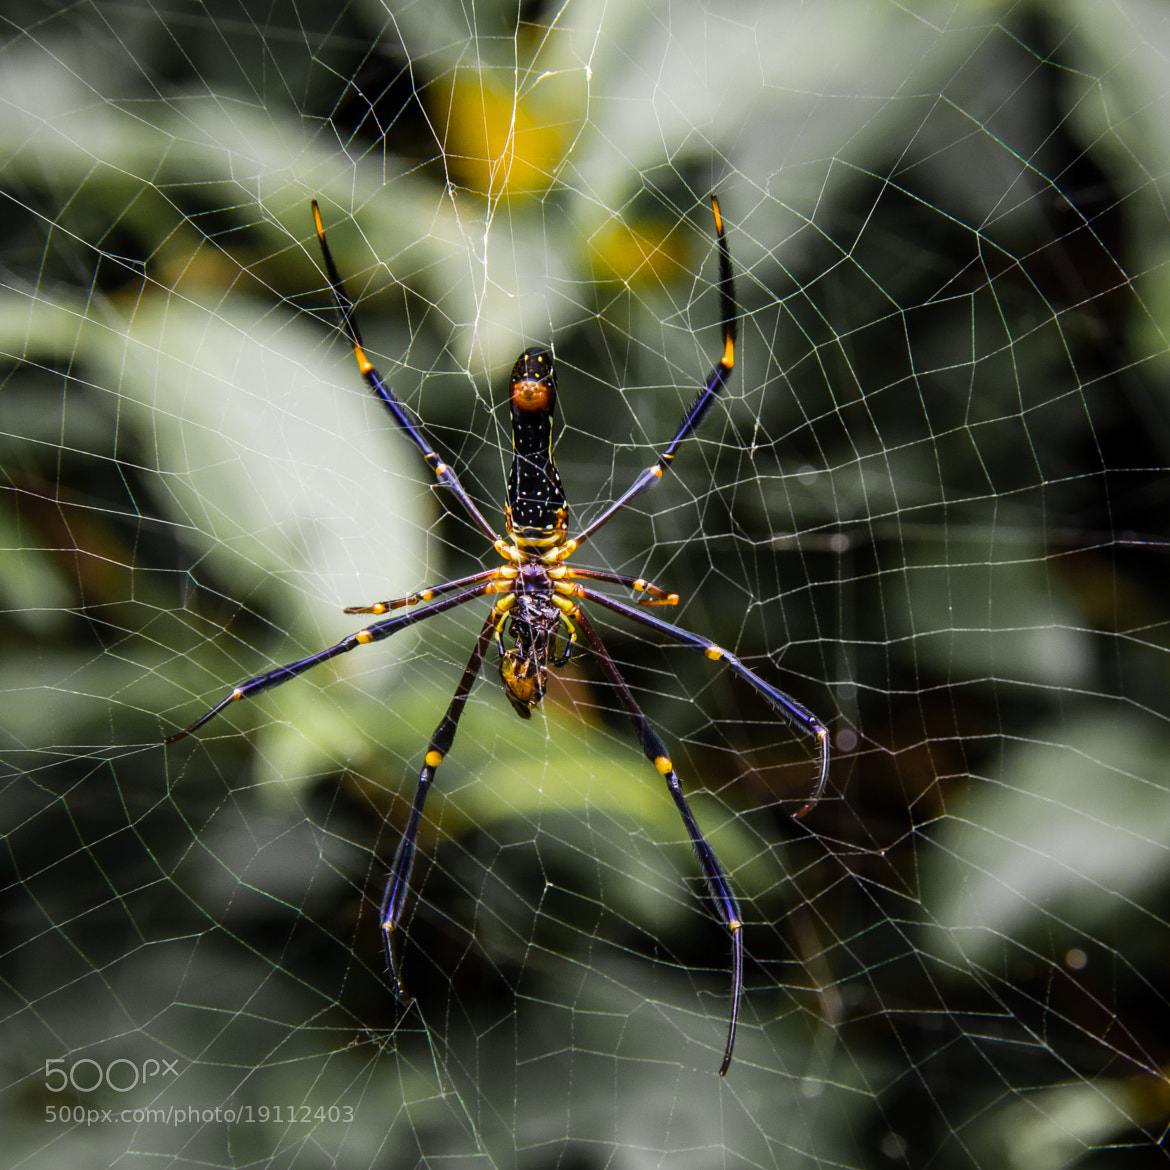 Photograph Spiderman by Jinesh Udani on 500px